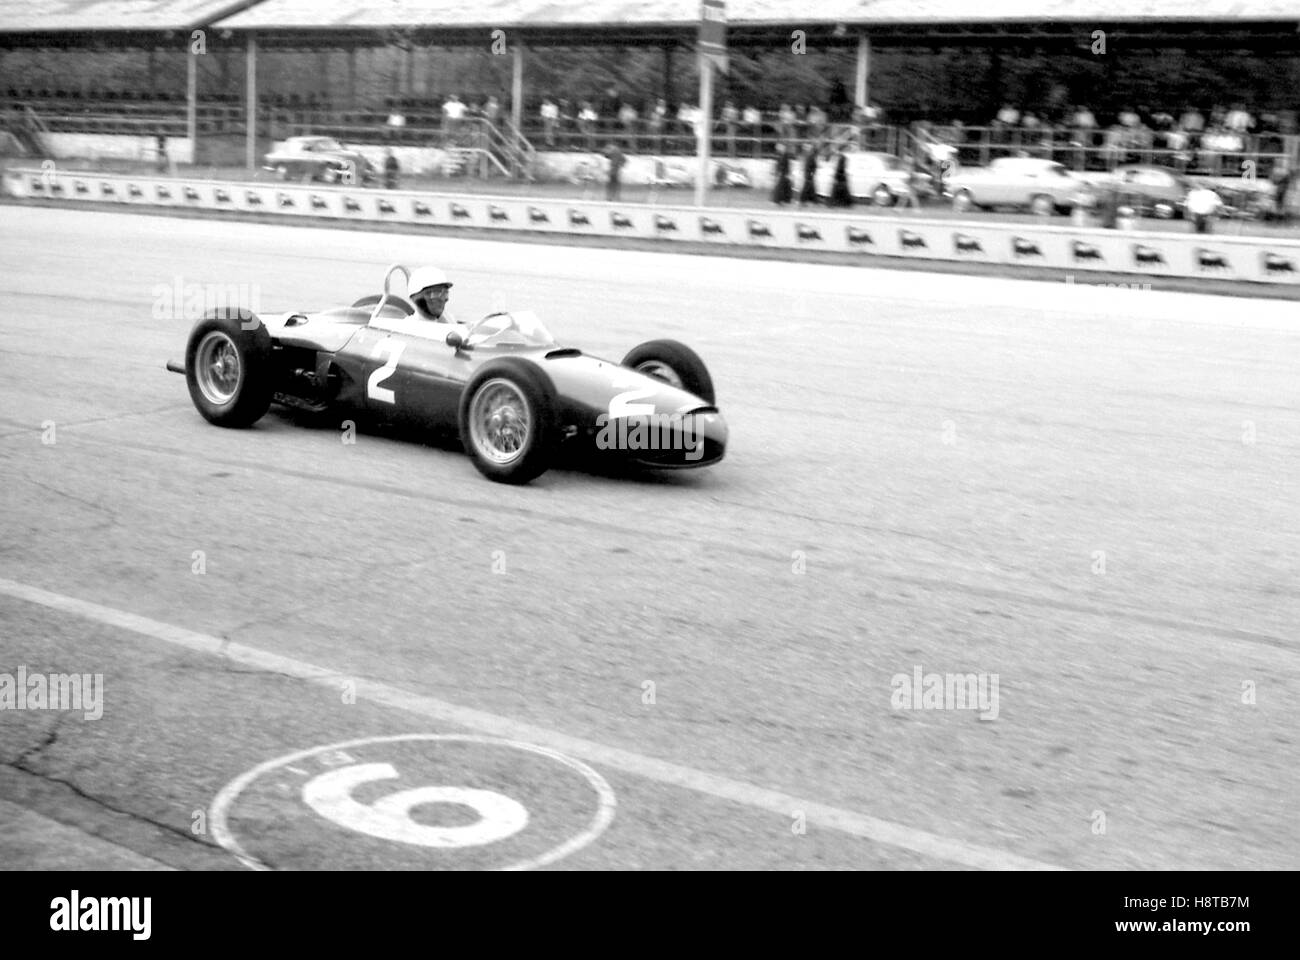 1961-italian-gp-phil-hill-ferrari-enters